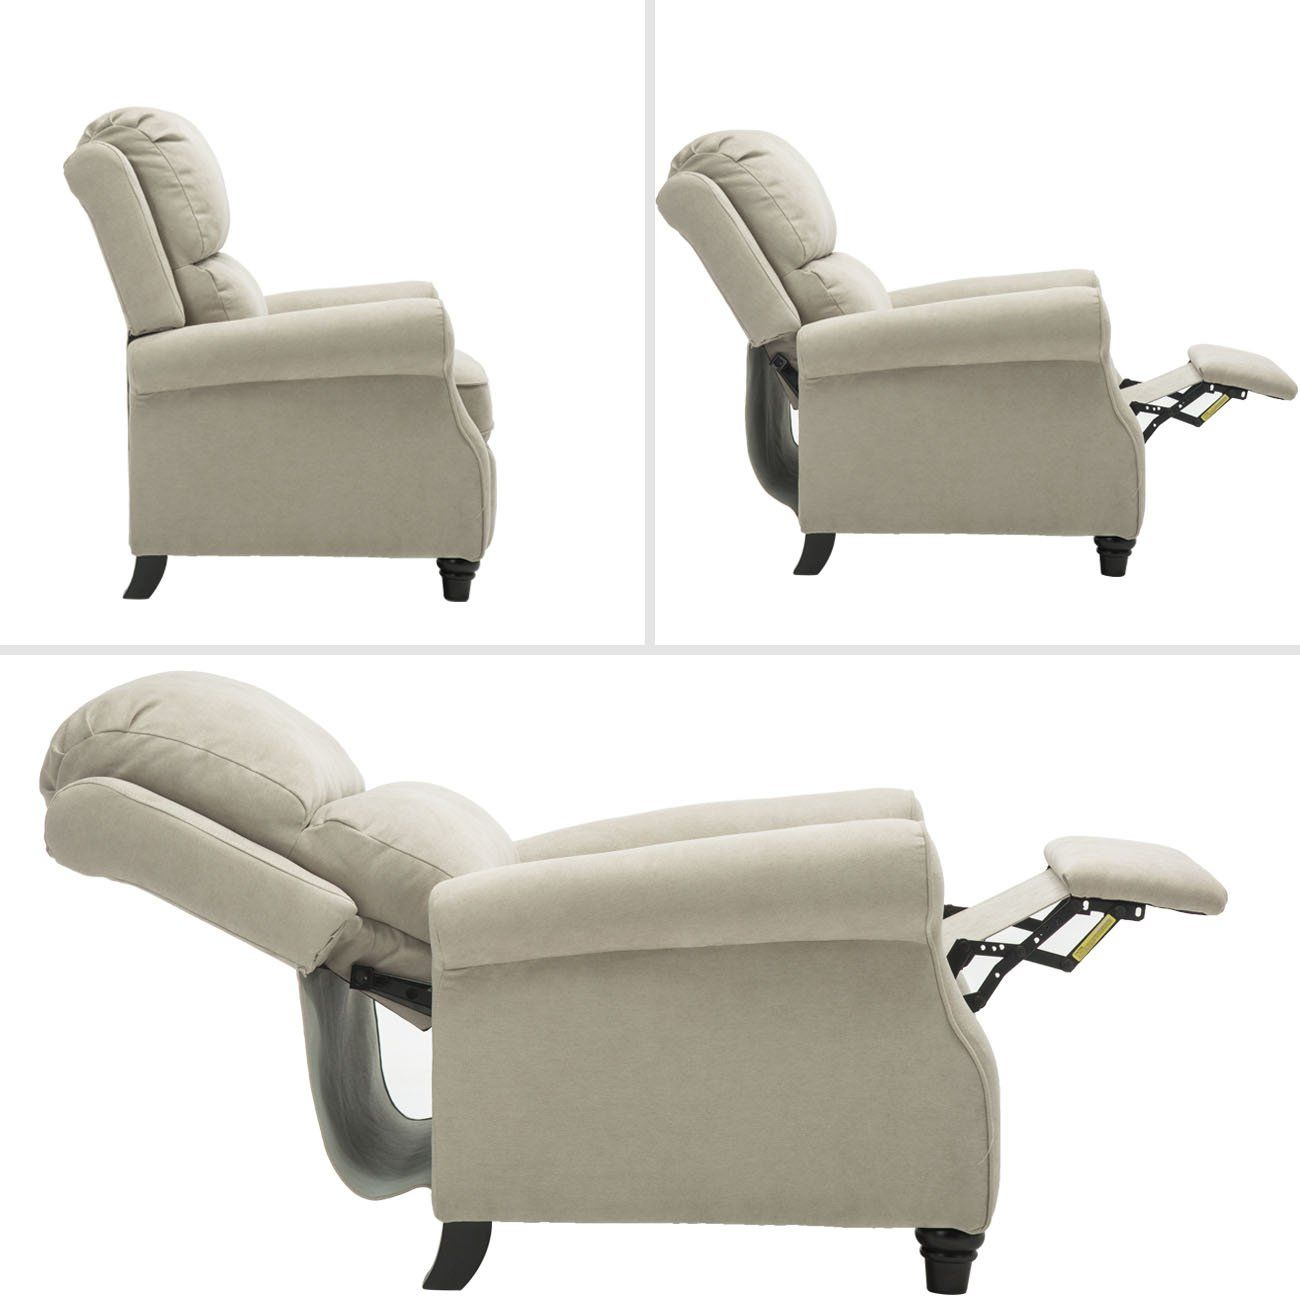 Bonzy Manual Recliner Chair Roll Arm And Pushback Mechanism Recliner Chair Buff Go To The Image Web Link Even M Chair Manual Recliner Chair Recliner Chair